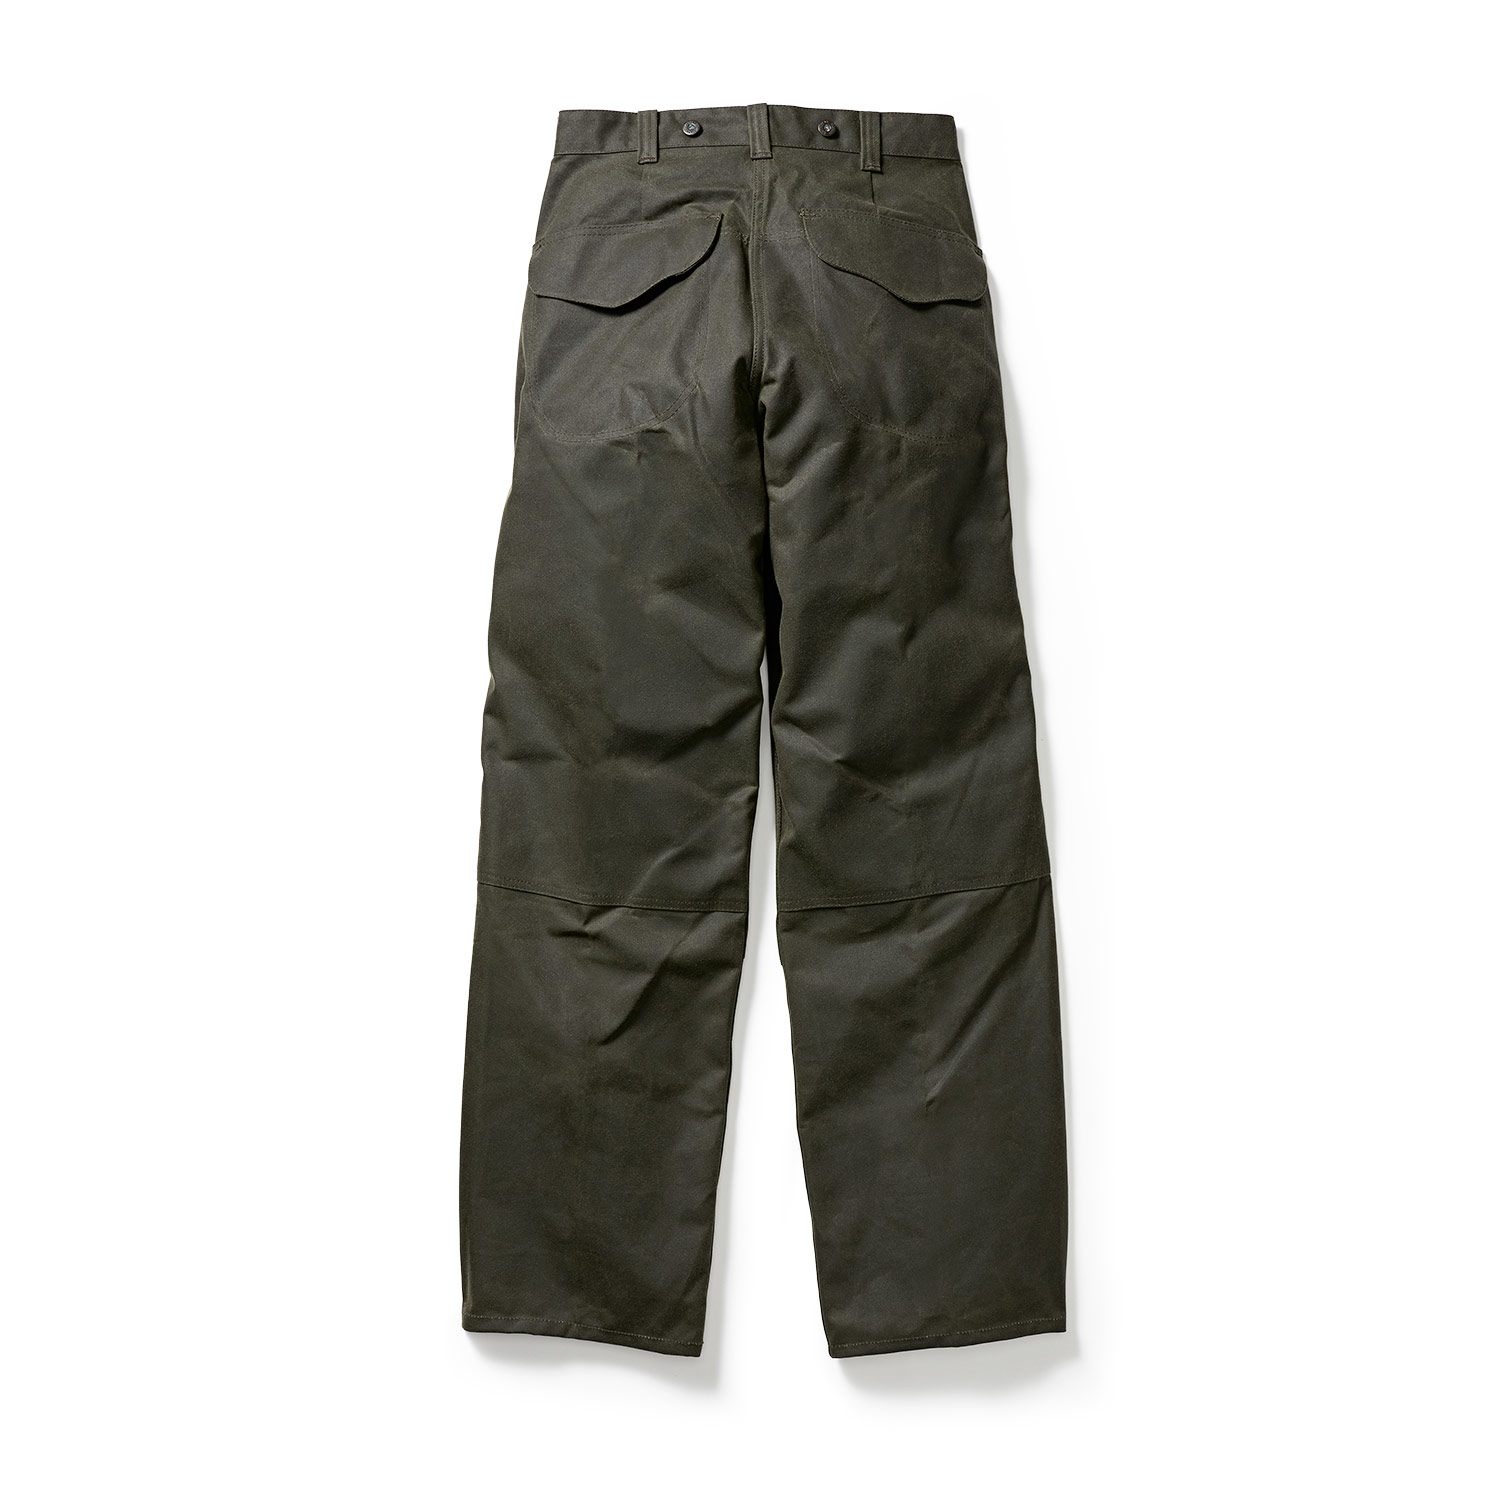 I've spent a year in my Filson Tin Pants Here's my take | EDCForums